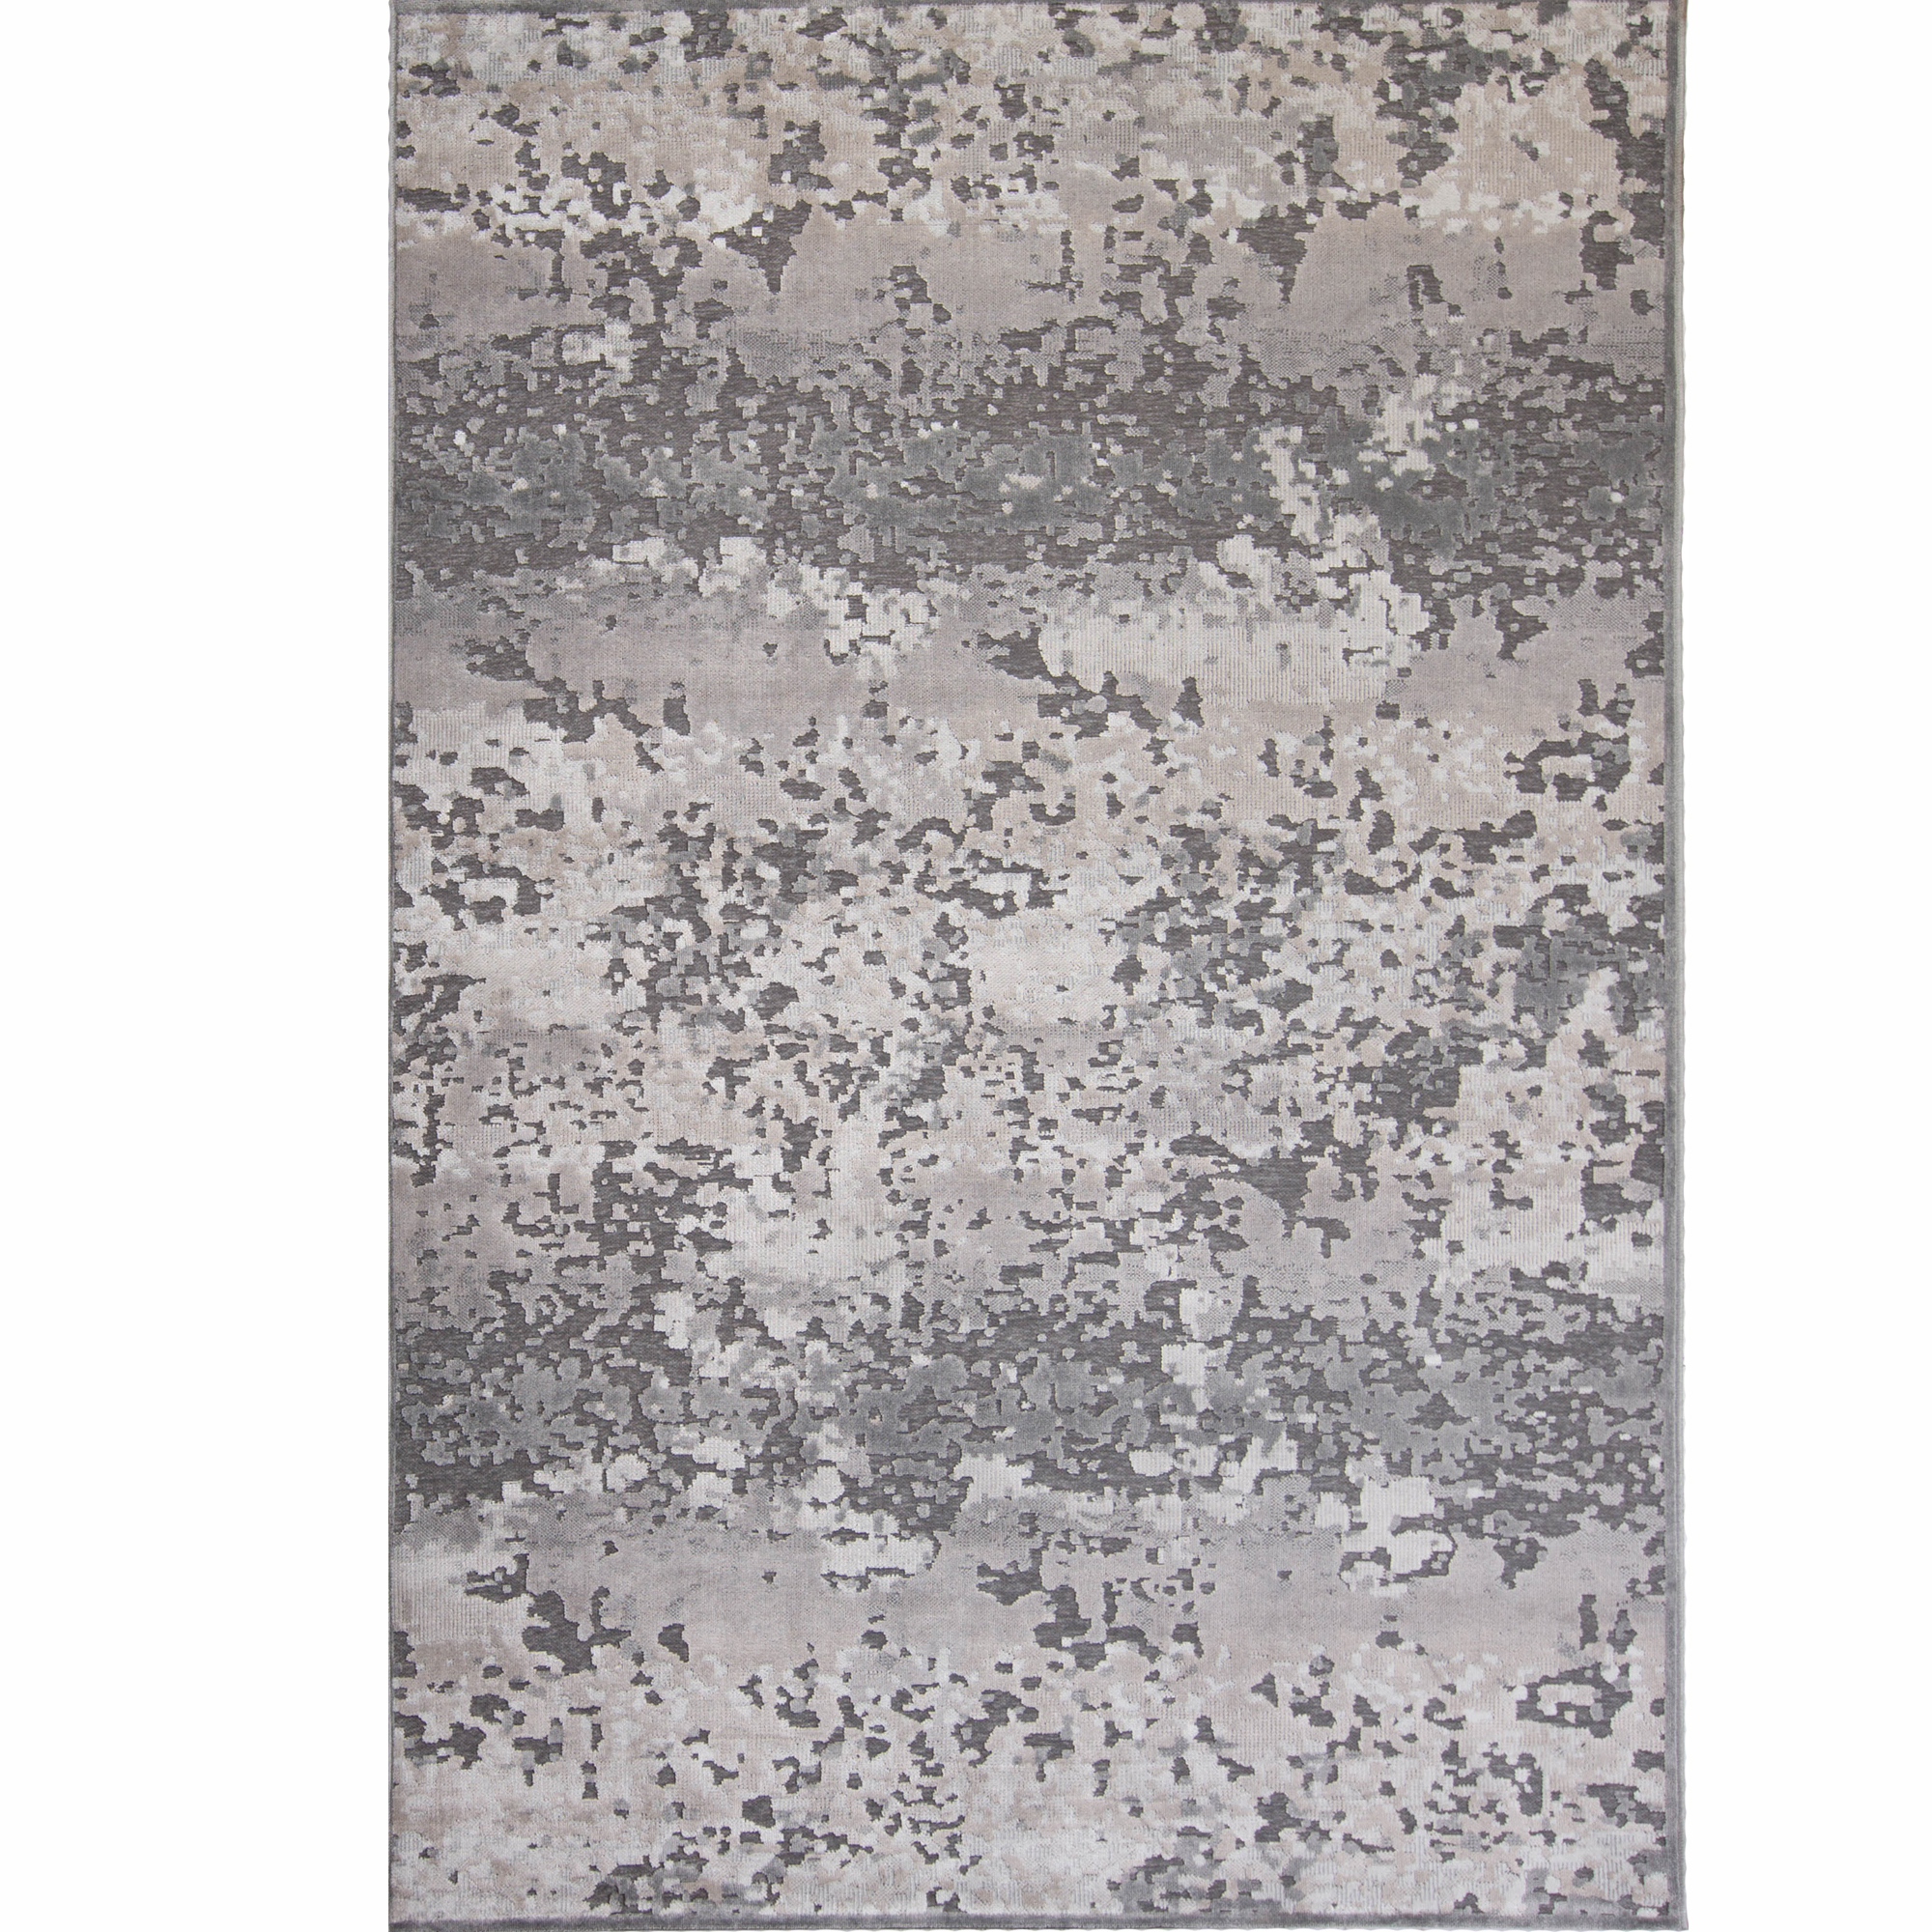 True To Nicole Miller's Subtle Modern Style, The Infinity Collection For  Home Dynamix Features Beautifully Distressed Designs In Muted Colors That  Will